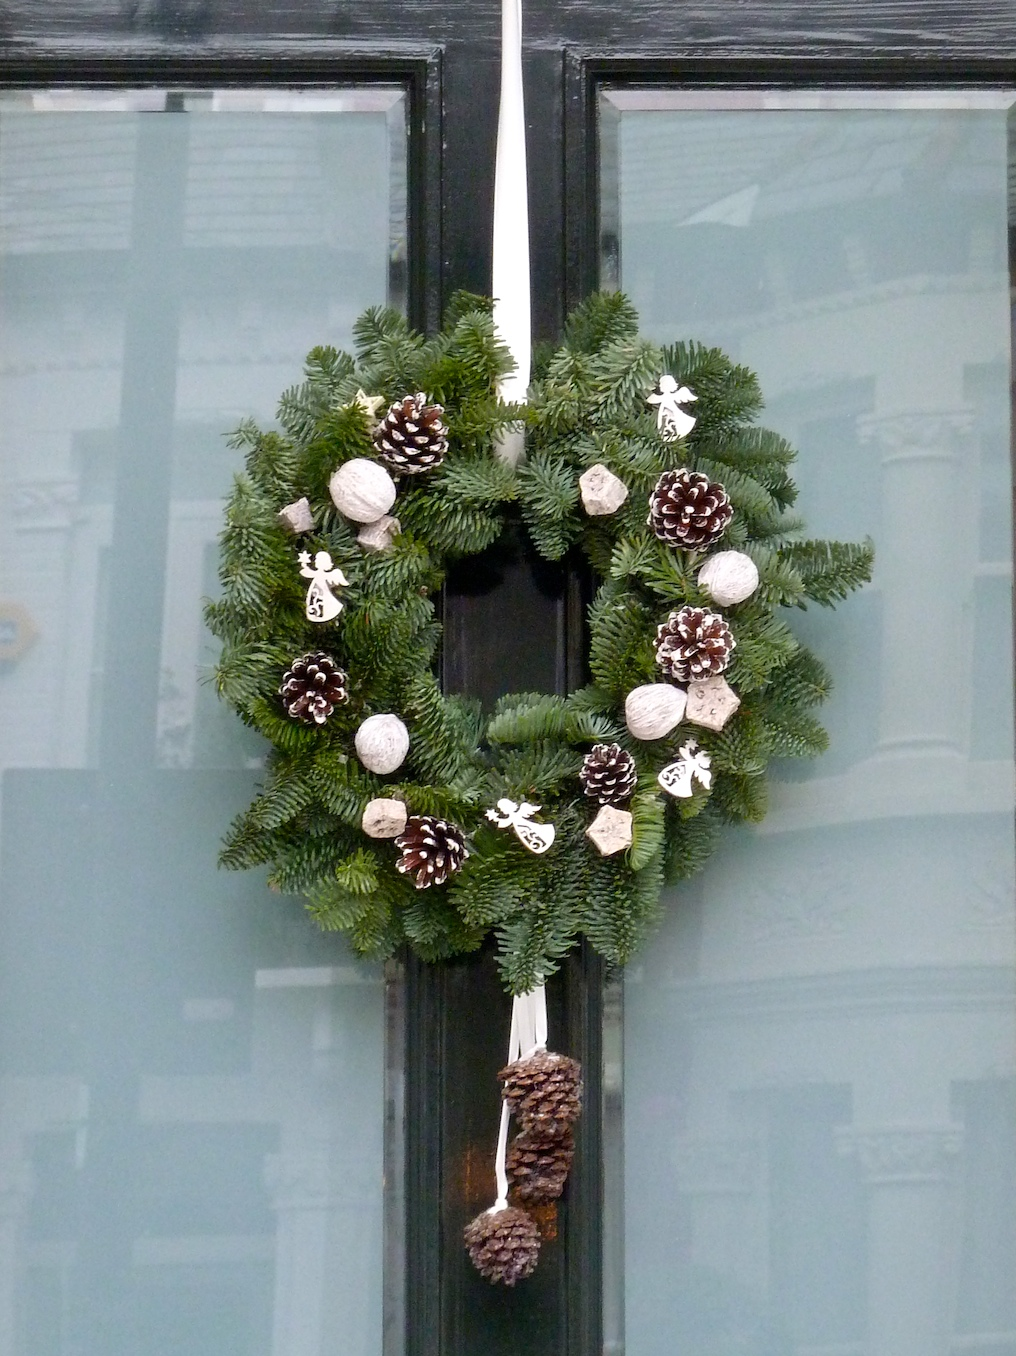 Christmas Wreaths from the streets of London Xmas 2010